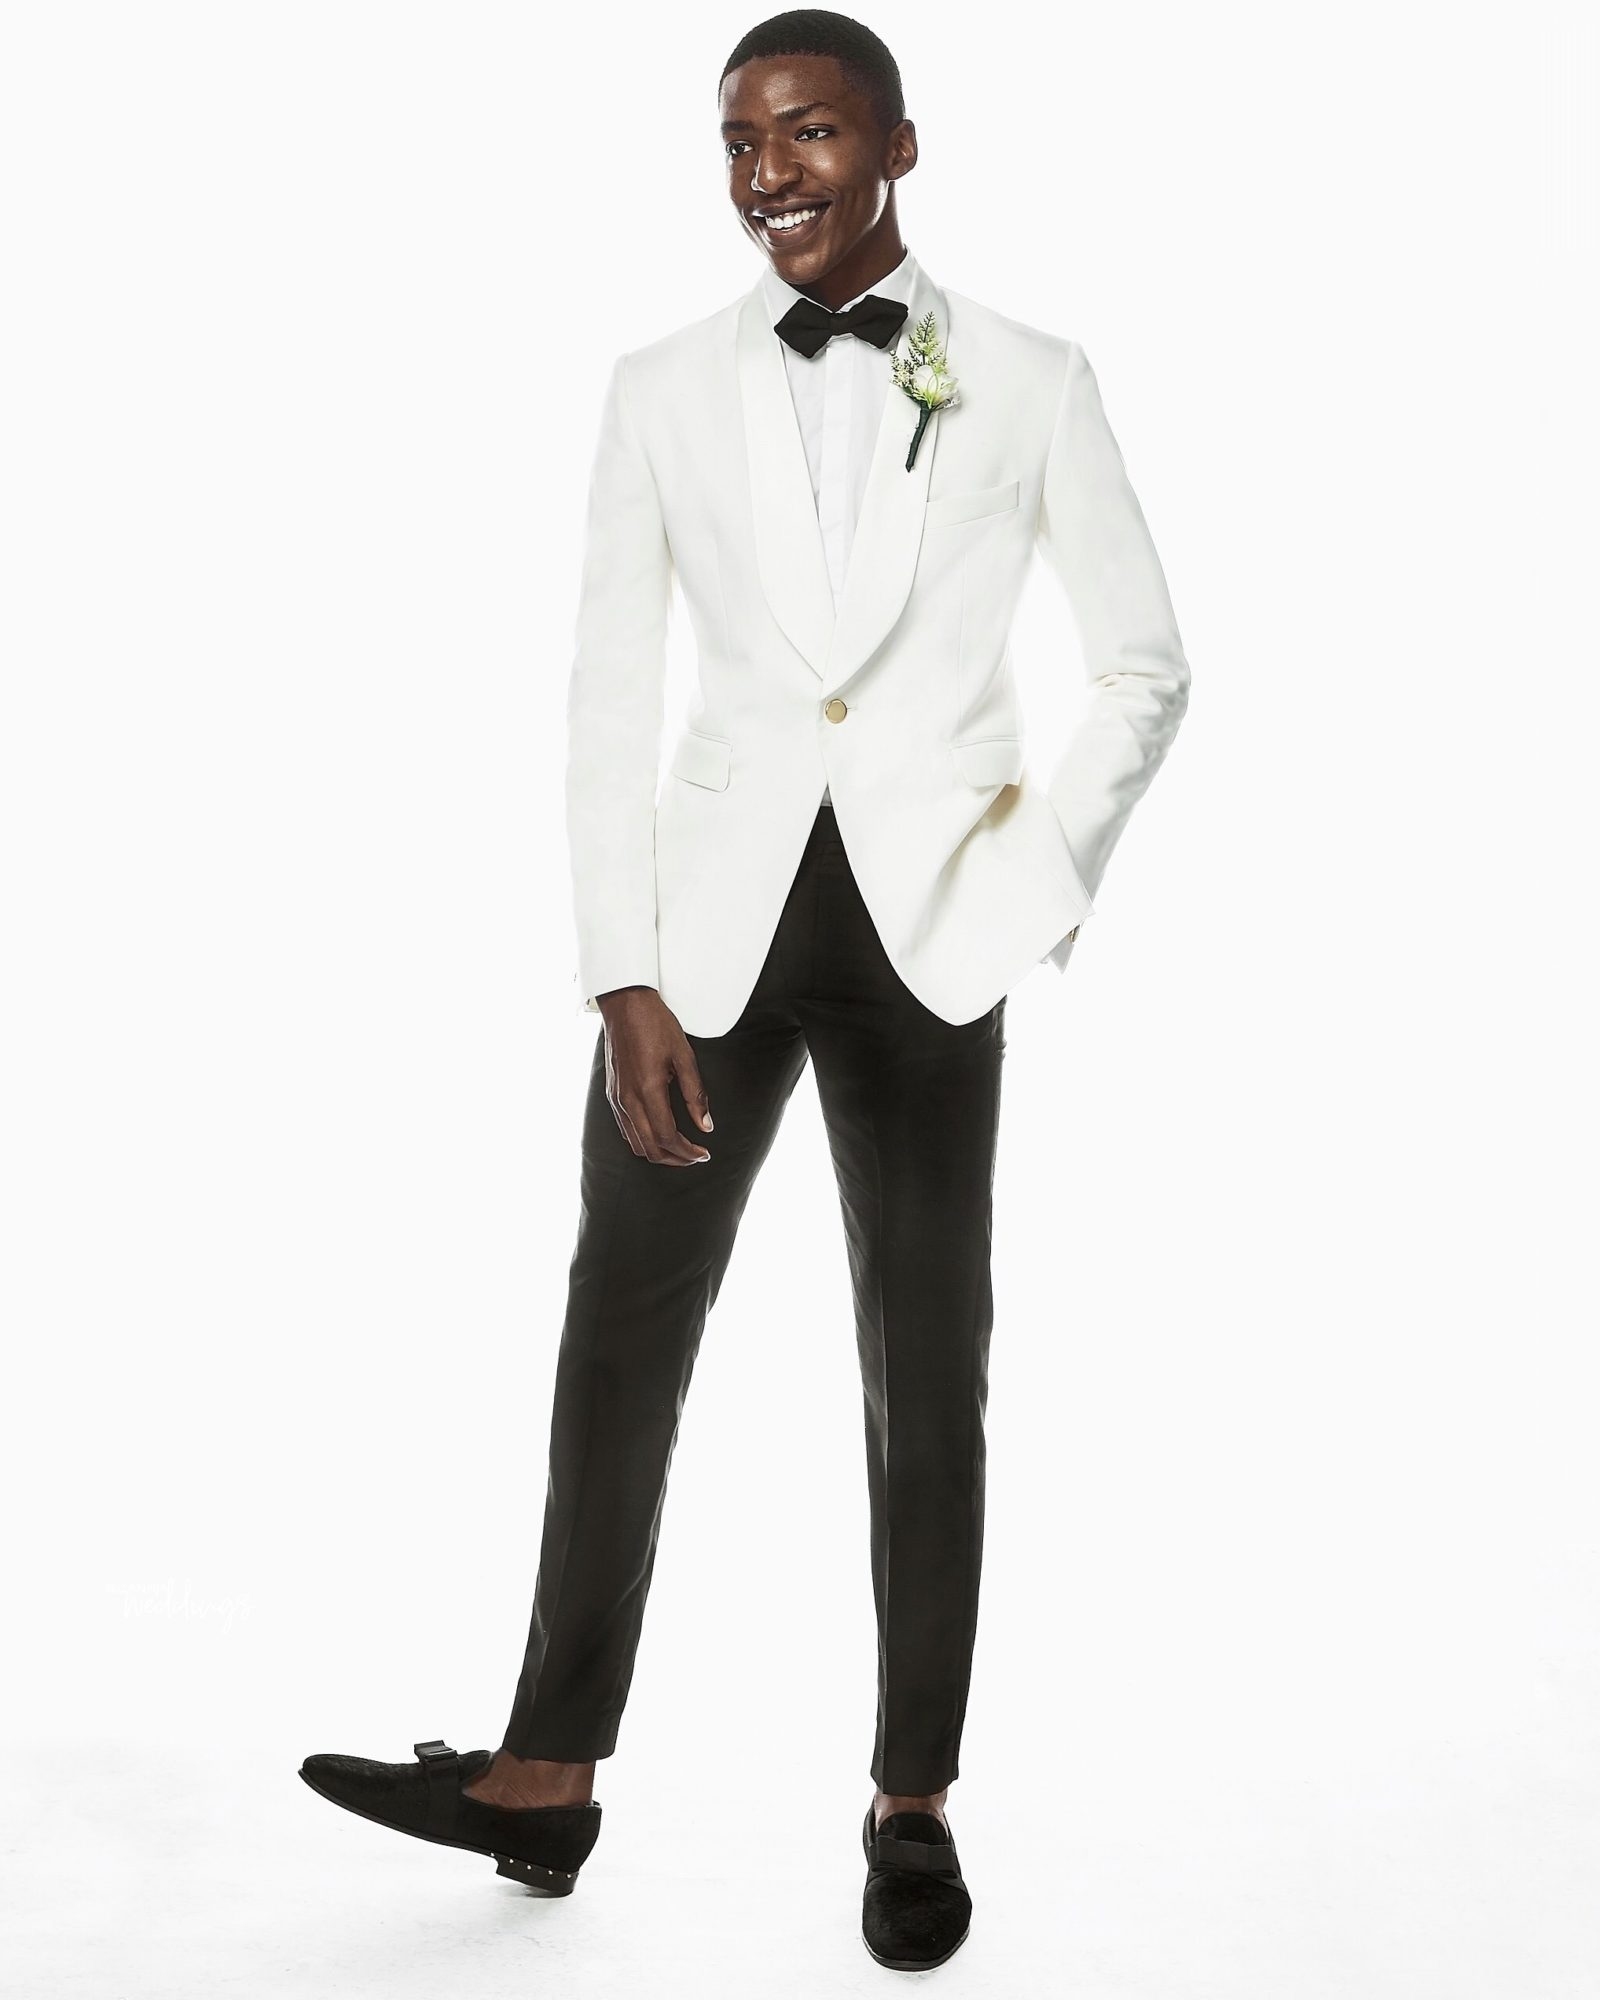 Grooms to be, Get Dapper Ready in These Suits by T.I Nathan